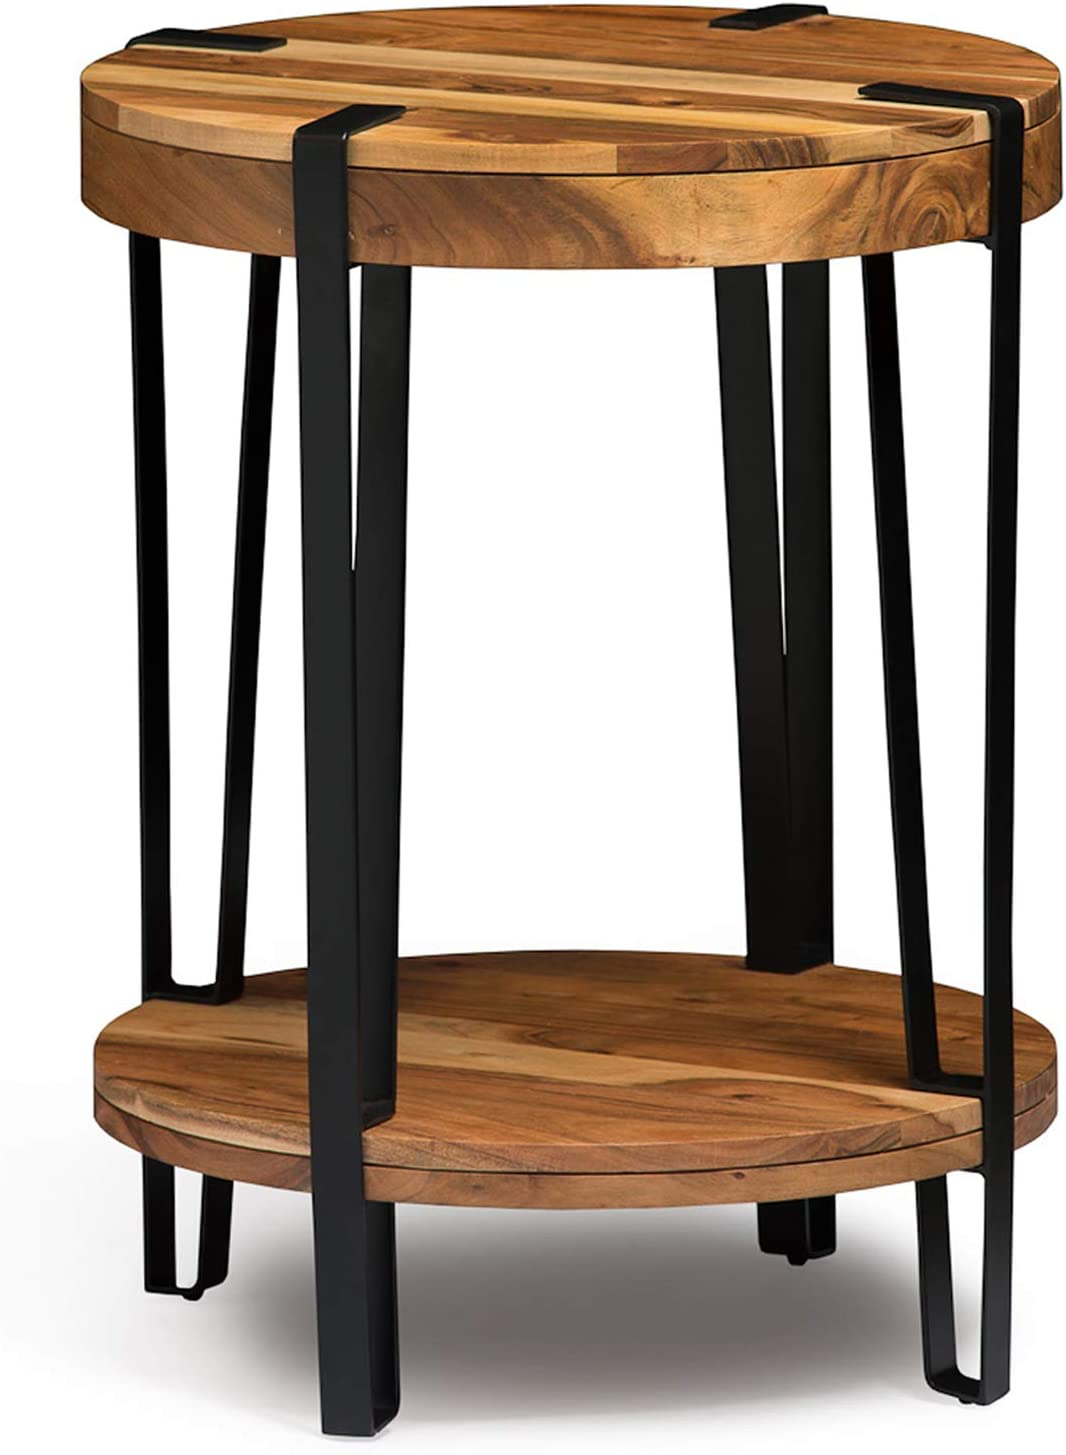 Alaterre Furniture Ryegate Natural Solid Wood with Metal Round End Table, Live Edge